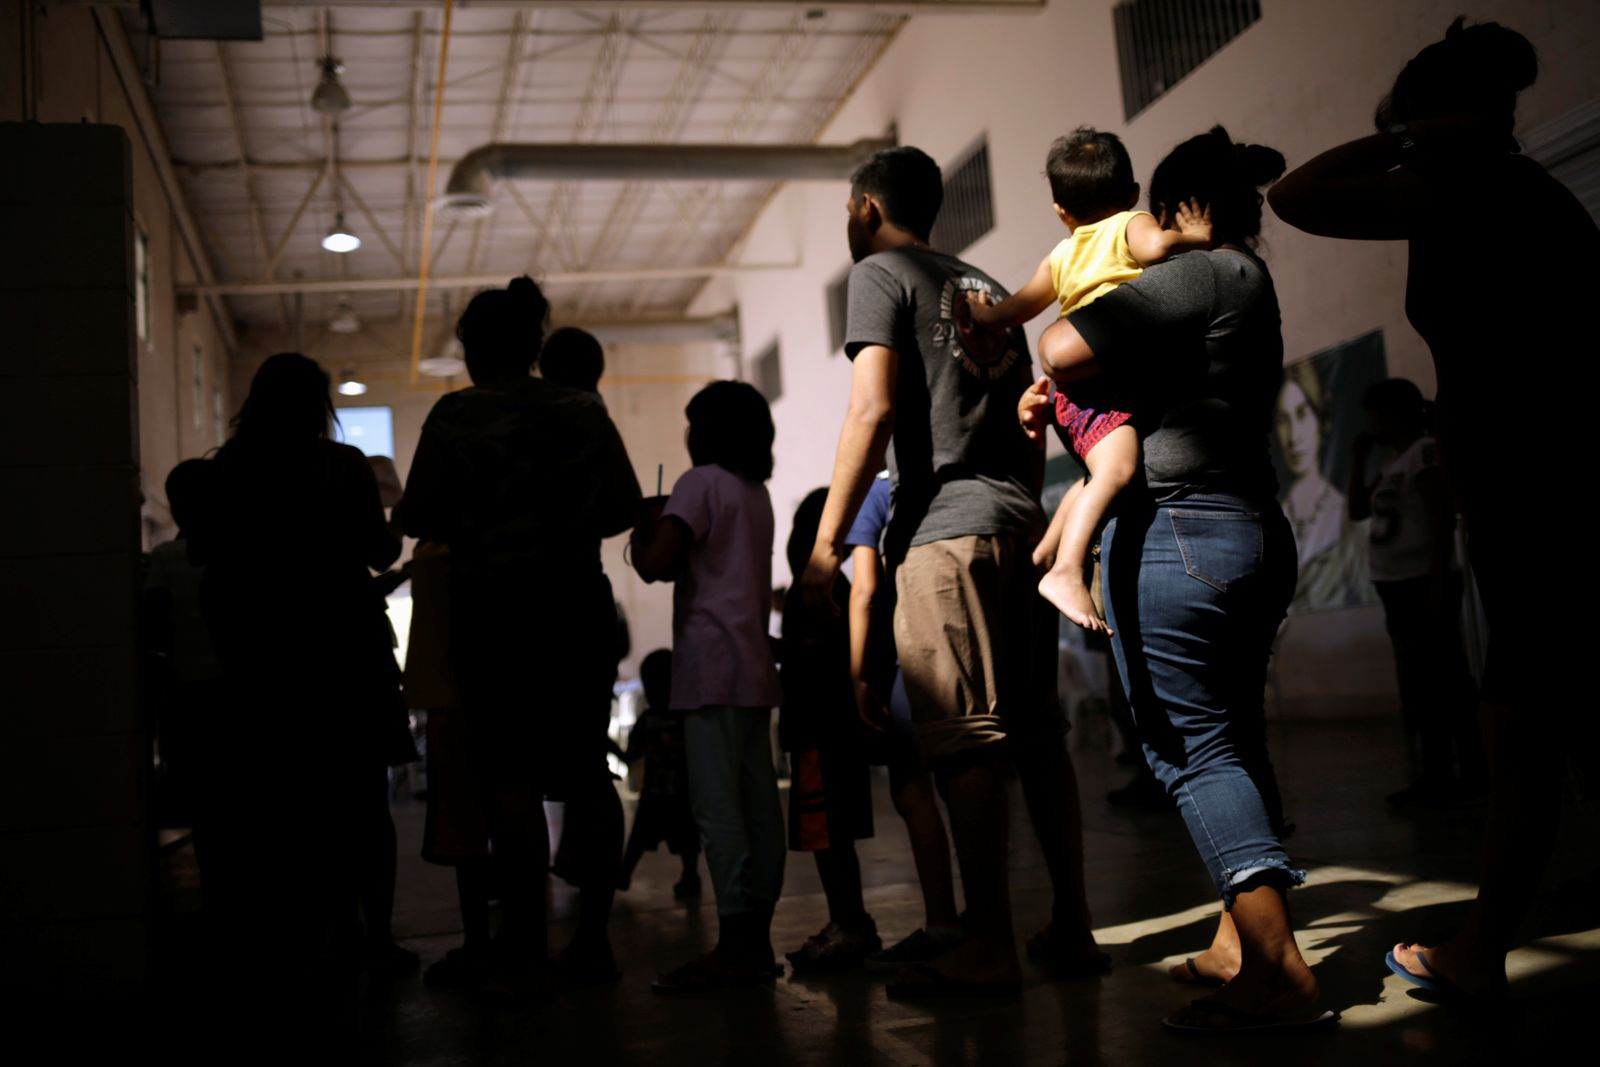 Migrants who returned to Mexico from the U.S. under the Migrant Protection Protocols, line up to receive food at a migrant shelter run by the federal government in Ciudad Juarez